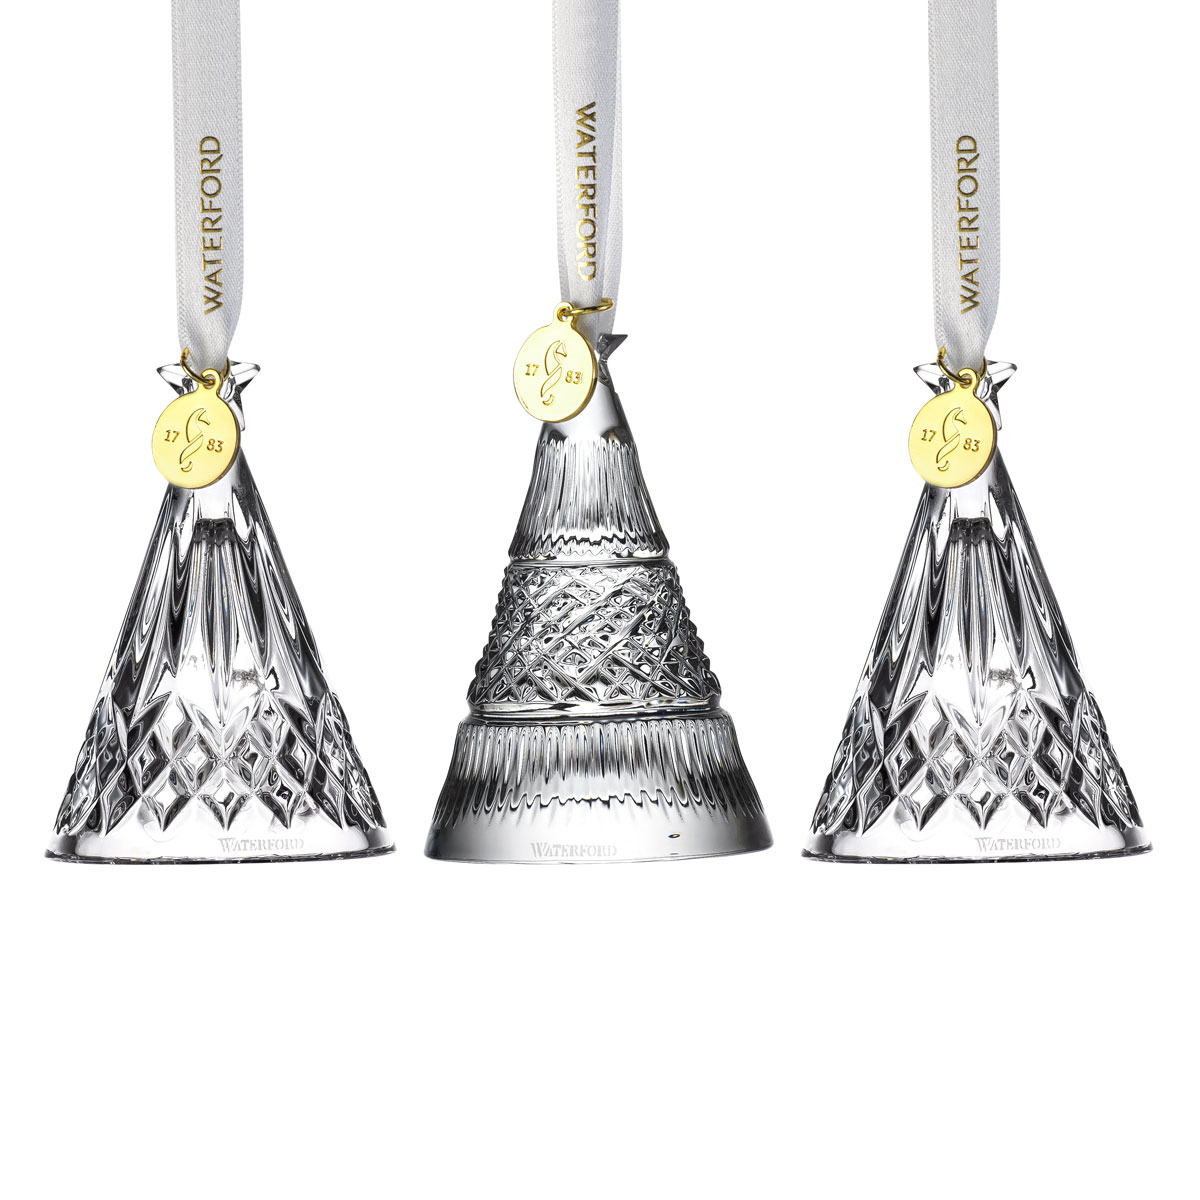 Waterford Crystal 2021 3D Tree Ornaments Set of 3 (Mixed Designs)